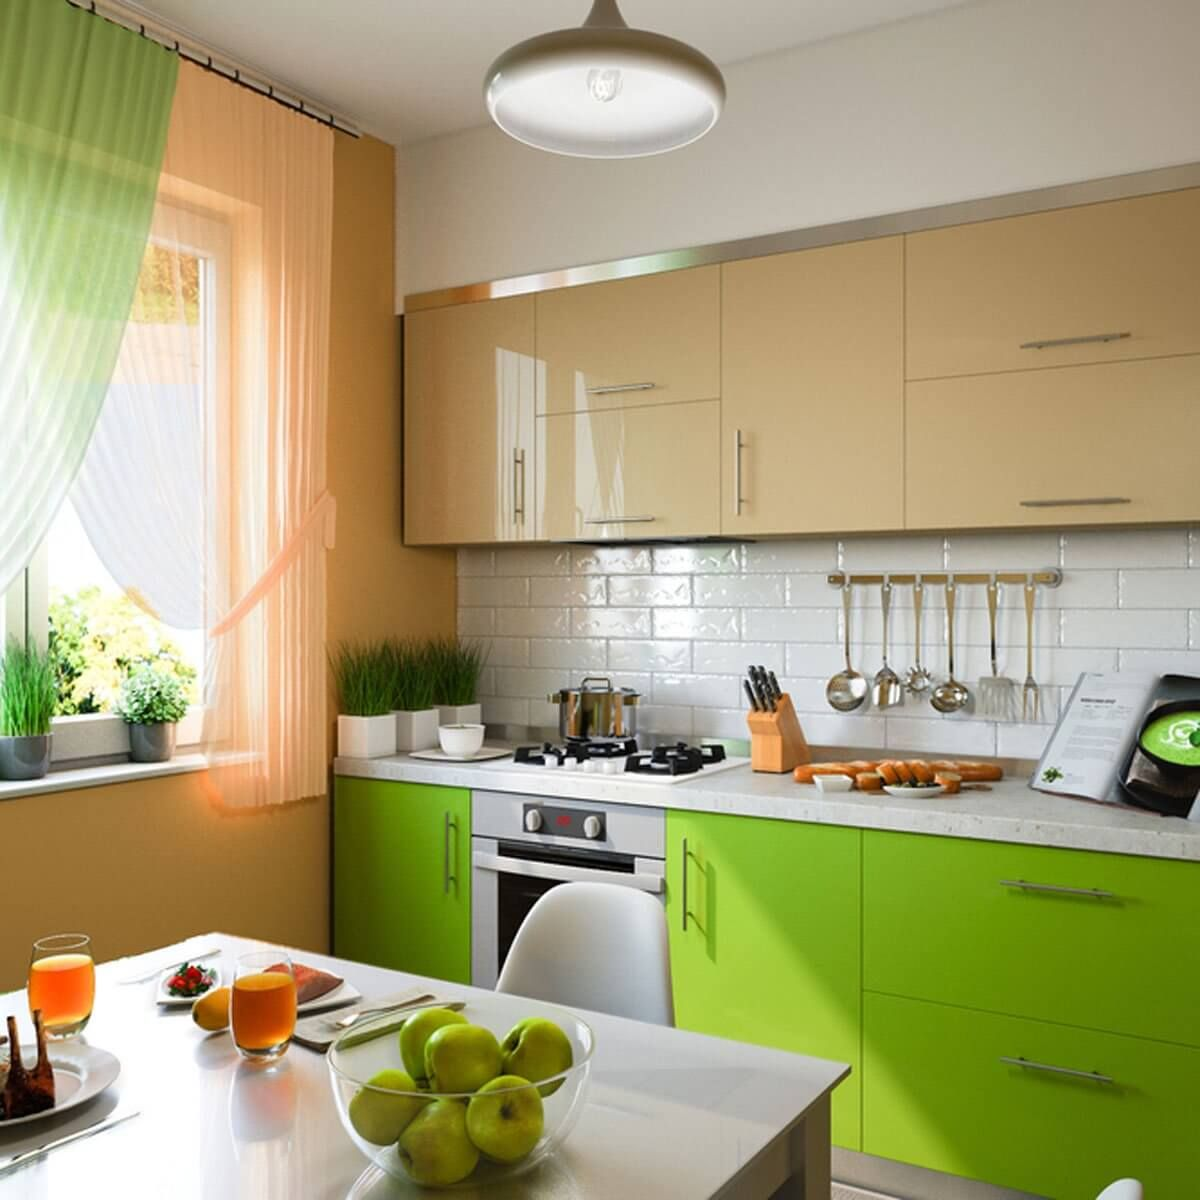 12 Kitchen Color Trends That Are Hot Right Now Kitchen Color Trends Kitchen Trends Kitchen Design Small